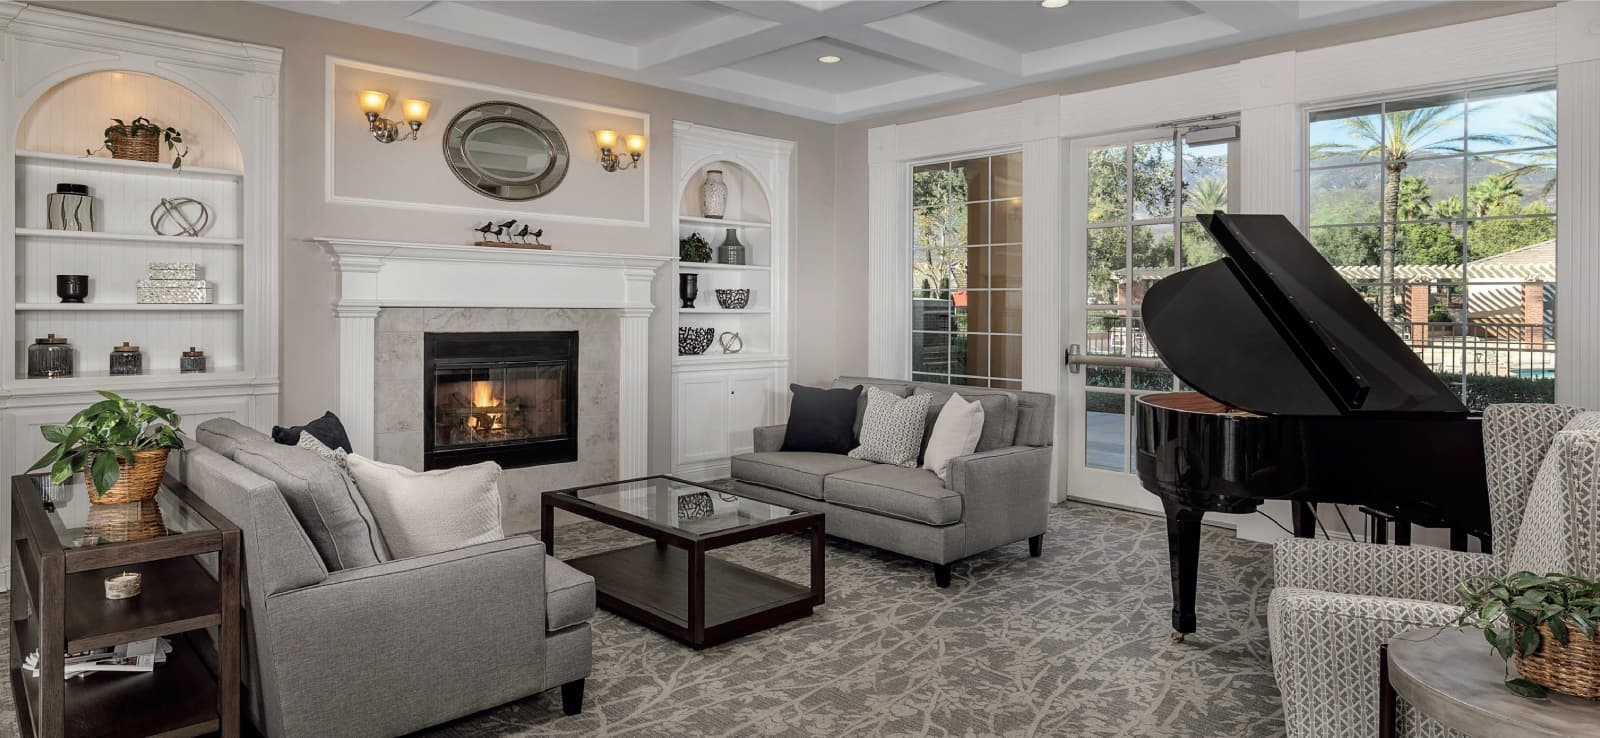 Living Room at The Parkhouse in Shady Trails